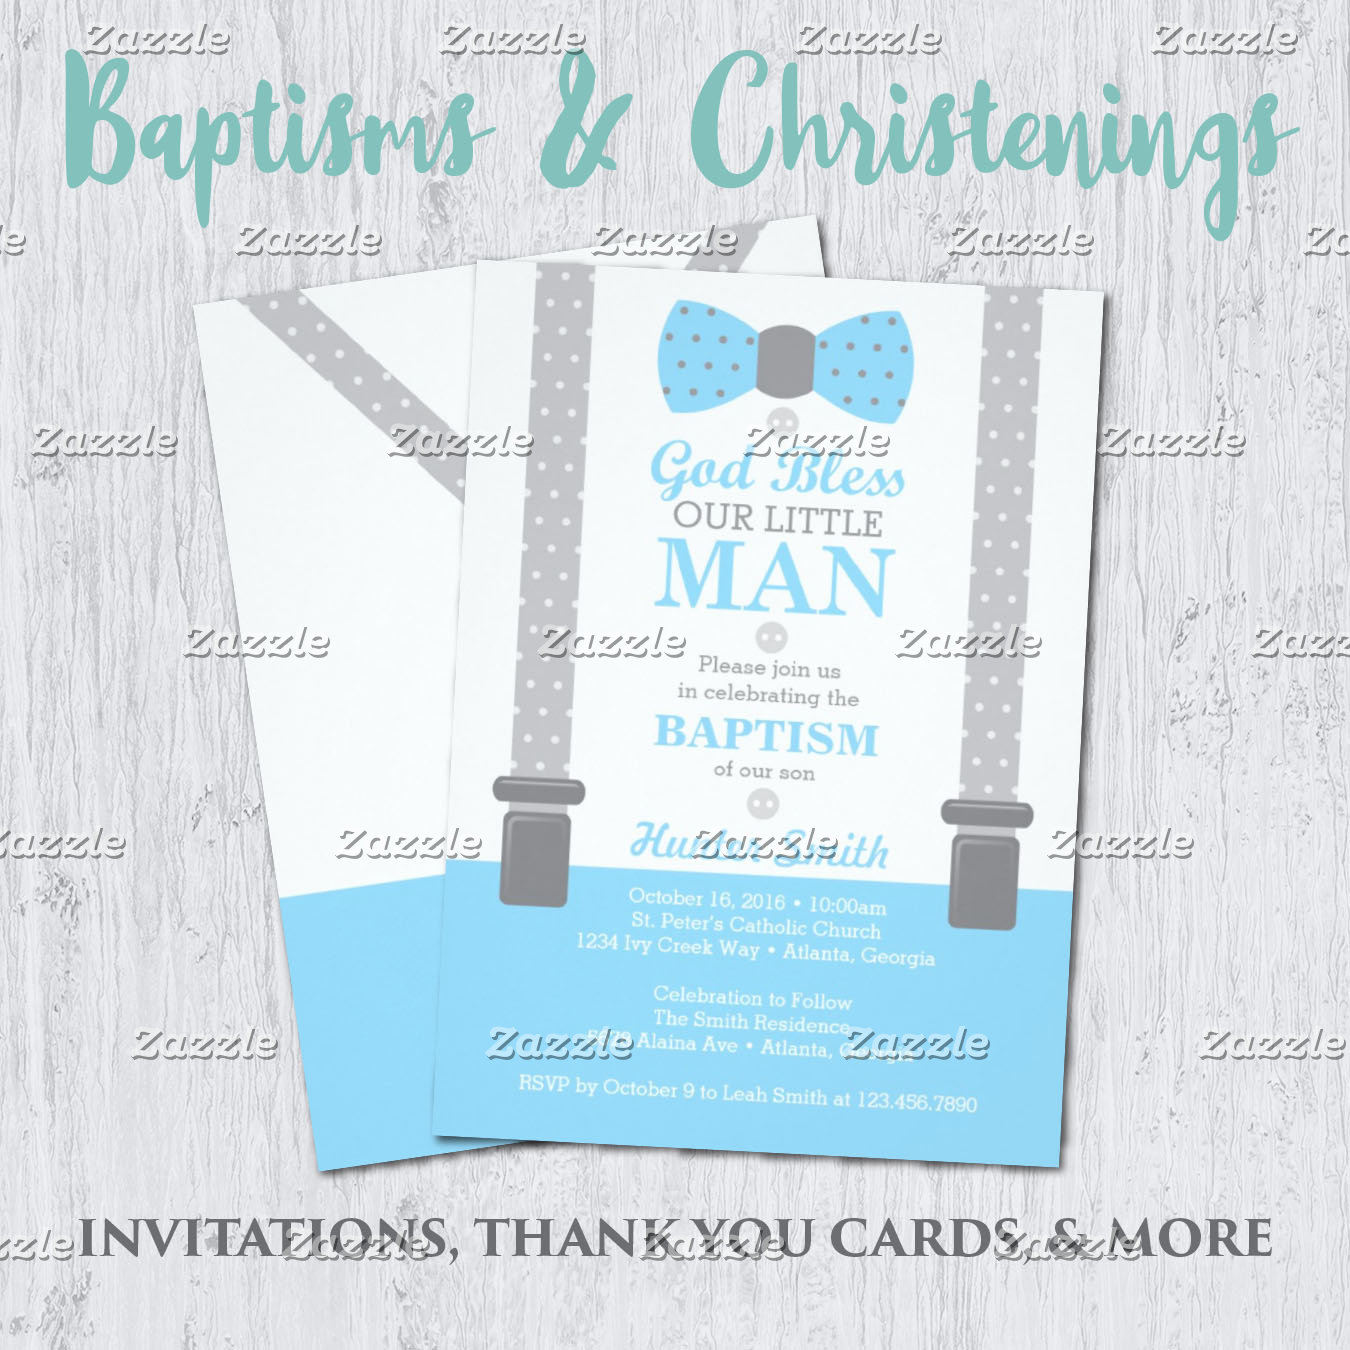 Baptisms & Christenings